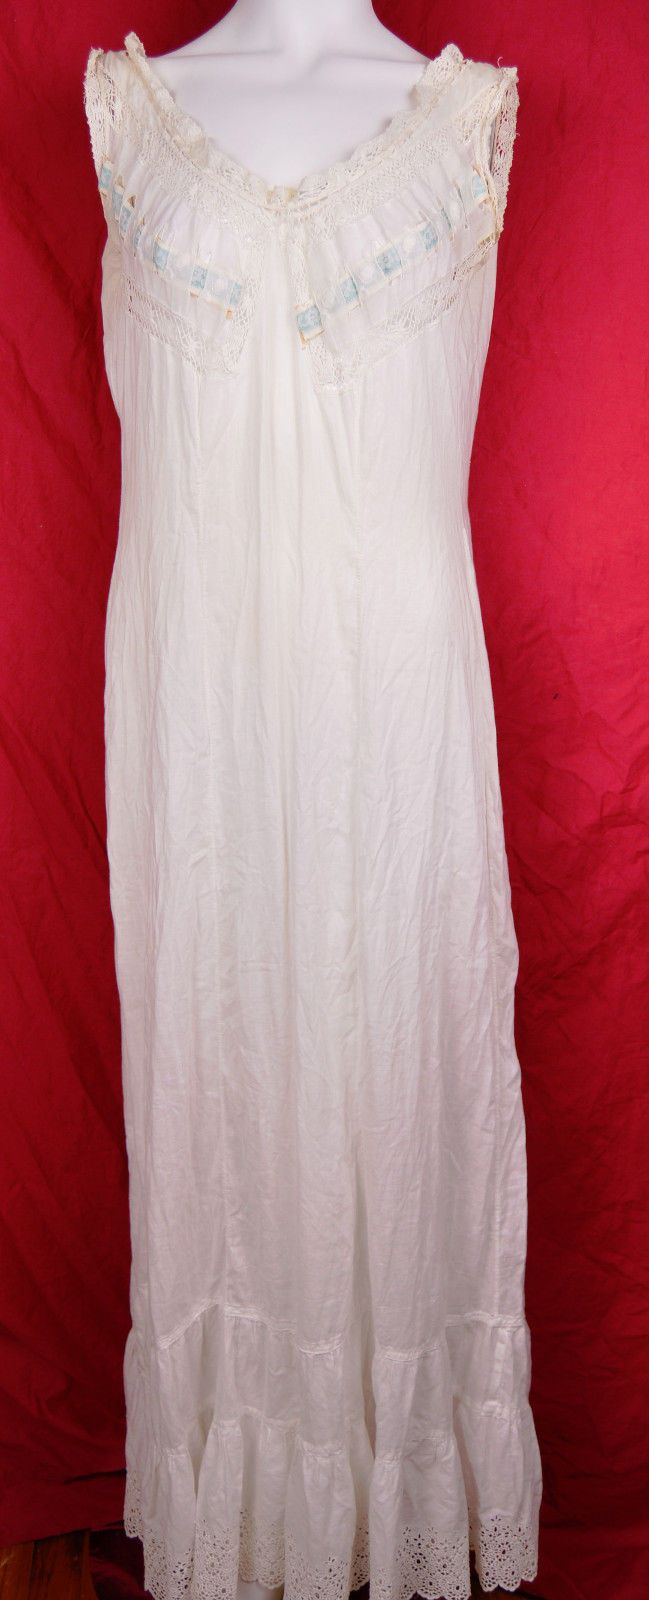 75a316acb6717 Women's Vintage Lingerie. Cotton full slip with cotton lace and a silk  ribbon through the neck.